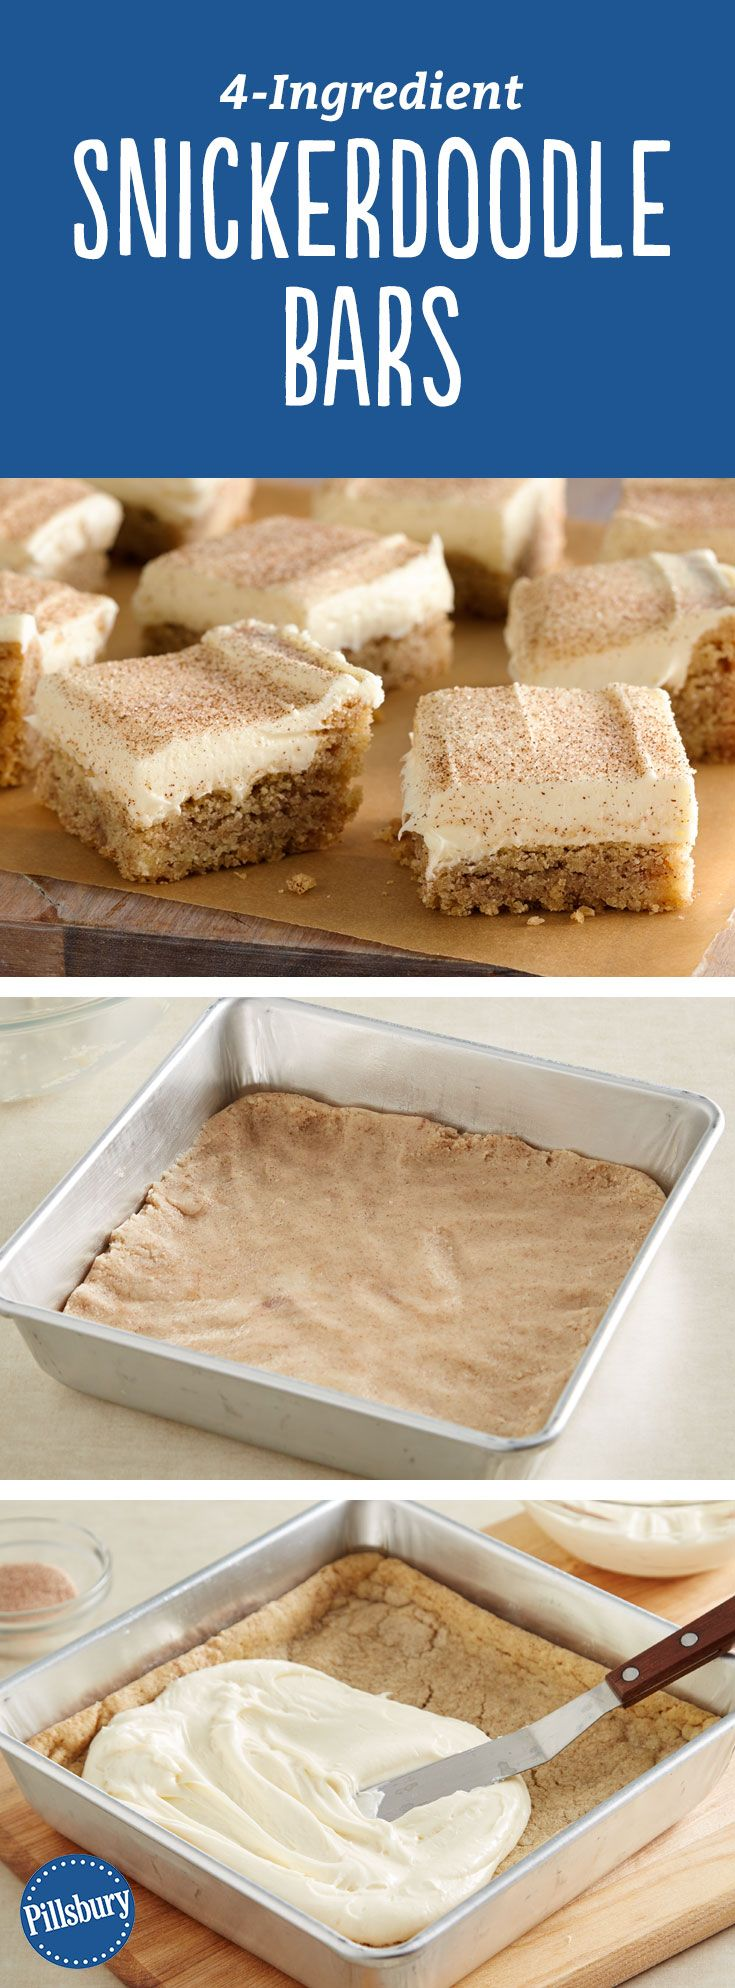 4-Ingredient Snickerdoodle Bars: These 4-ingredient snickerdoodle bars made with sugar cookie dough will become a favorite for any time of the year.